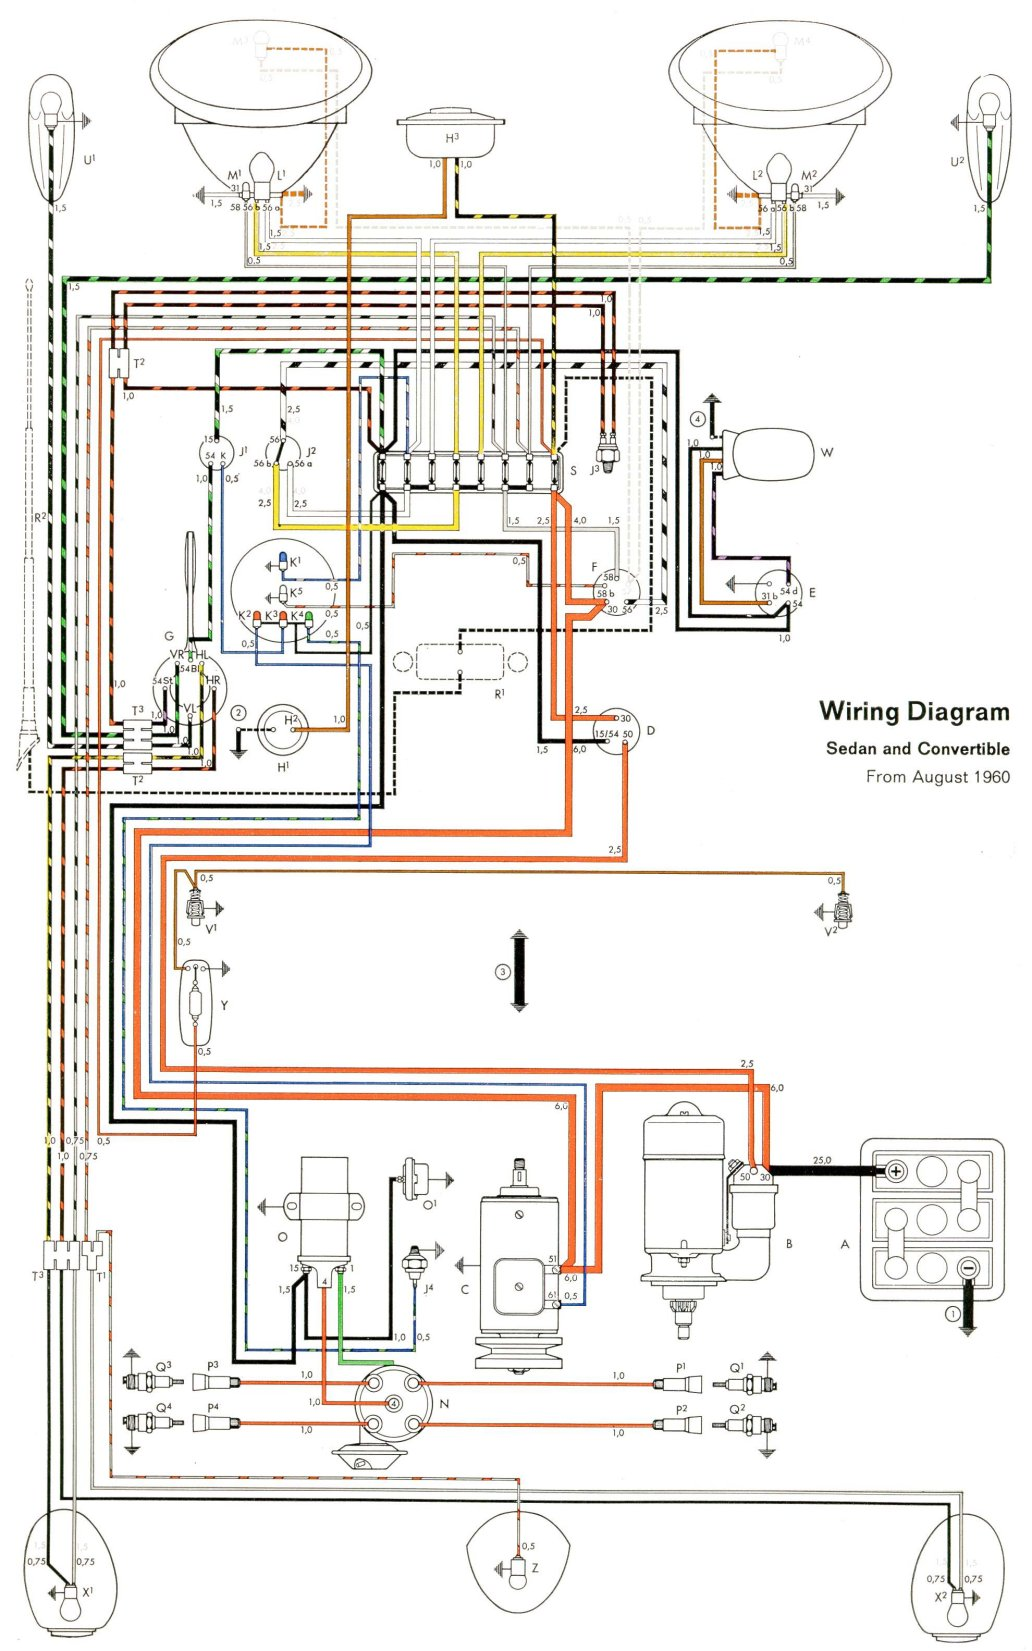 Vw Wiring Harness Diagram Will Be A Thing Volkswagen Jetta Door Thesamba Com Type 1 Diagrams Rh 2003 Passat